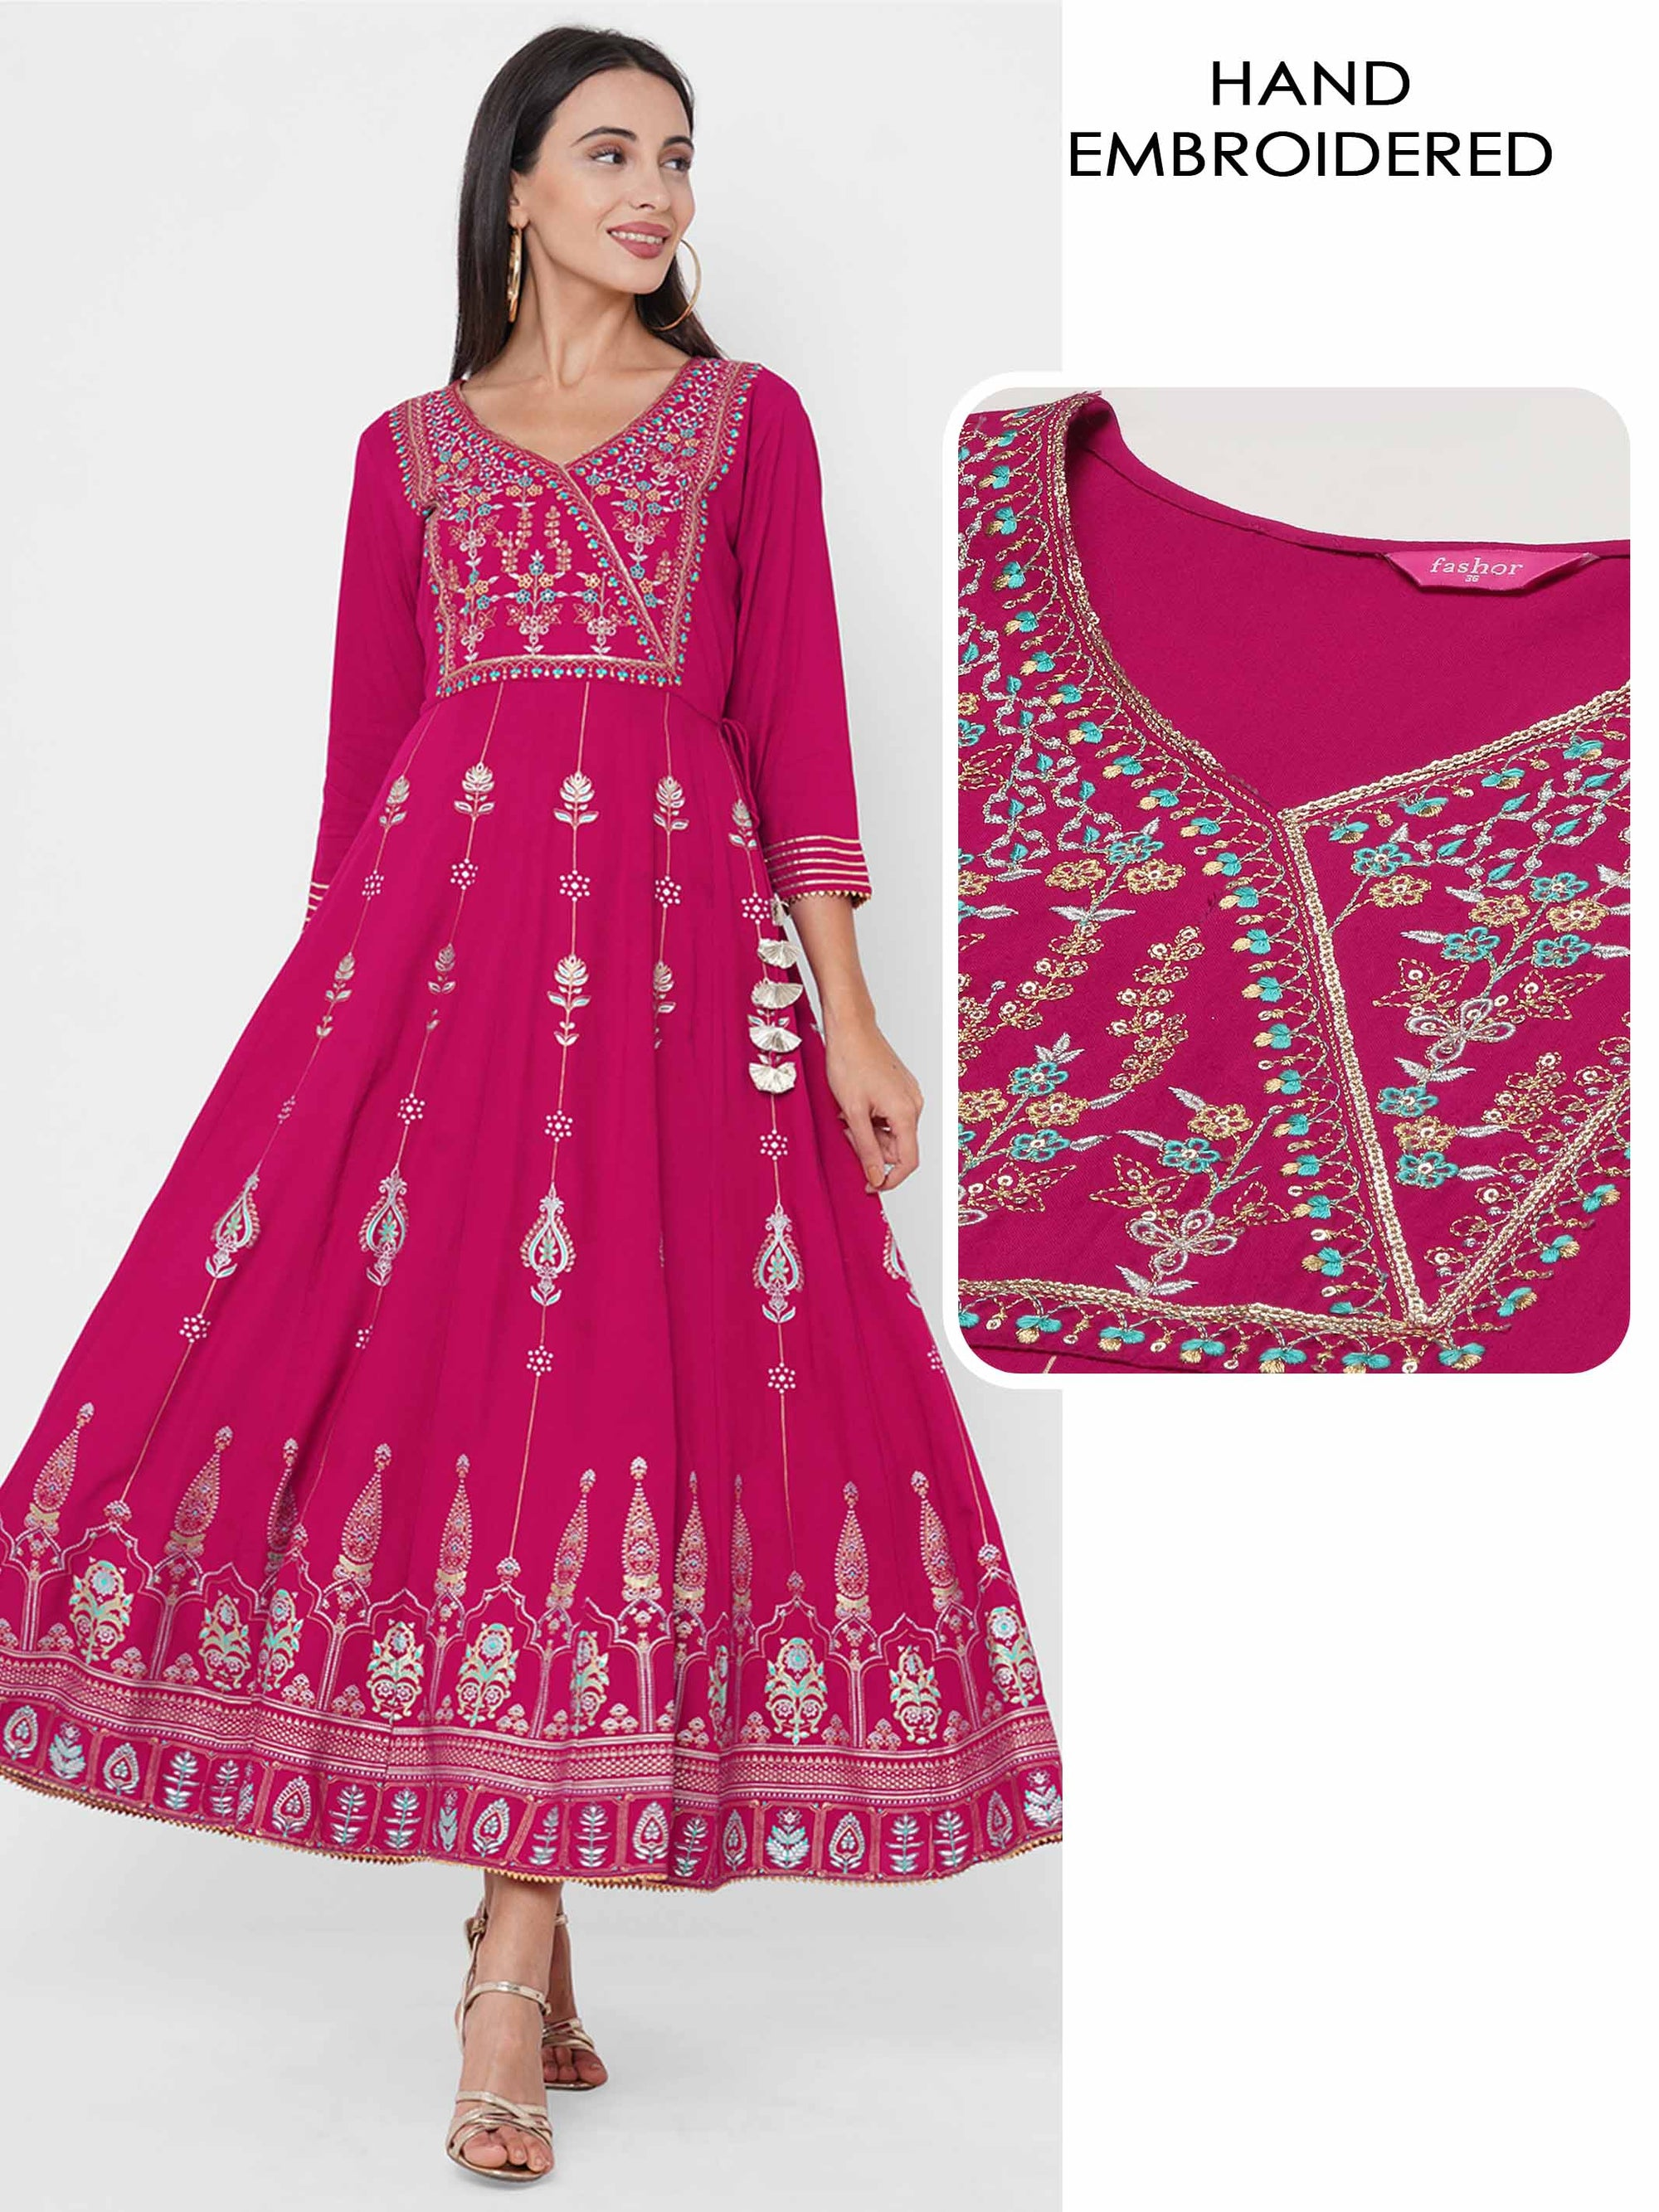 Ethnic Foil Printed & Embroidered Festive Maxi Dress - Pink